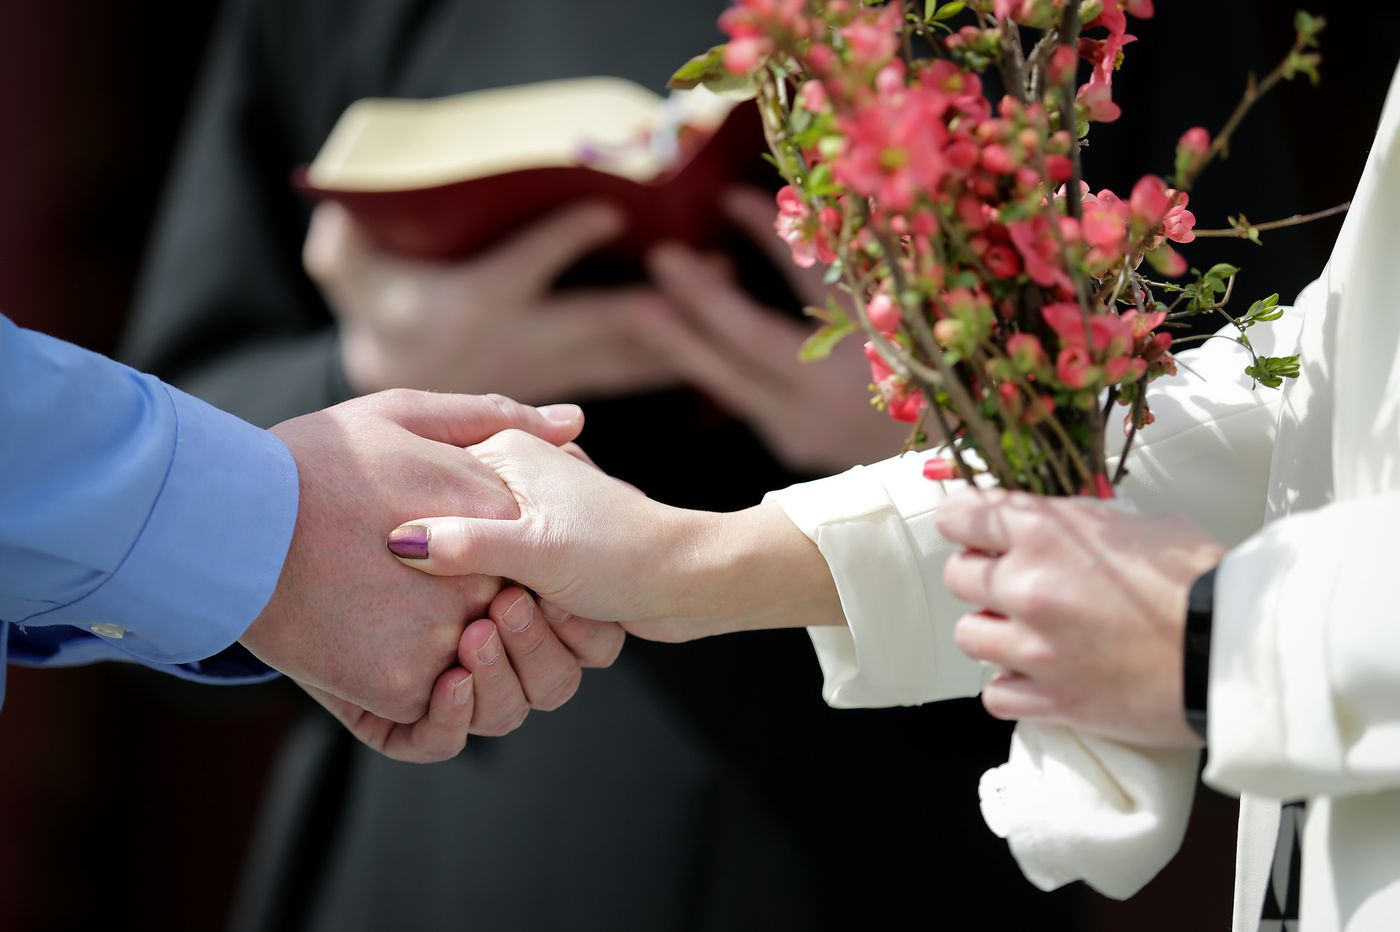 How to (kindly) uninvite people from your wedding and other etiquette tips amid the coronavirus